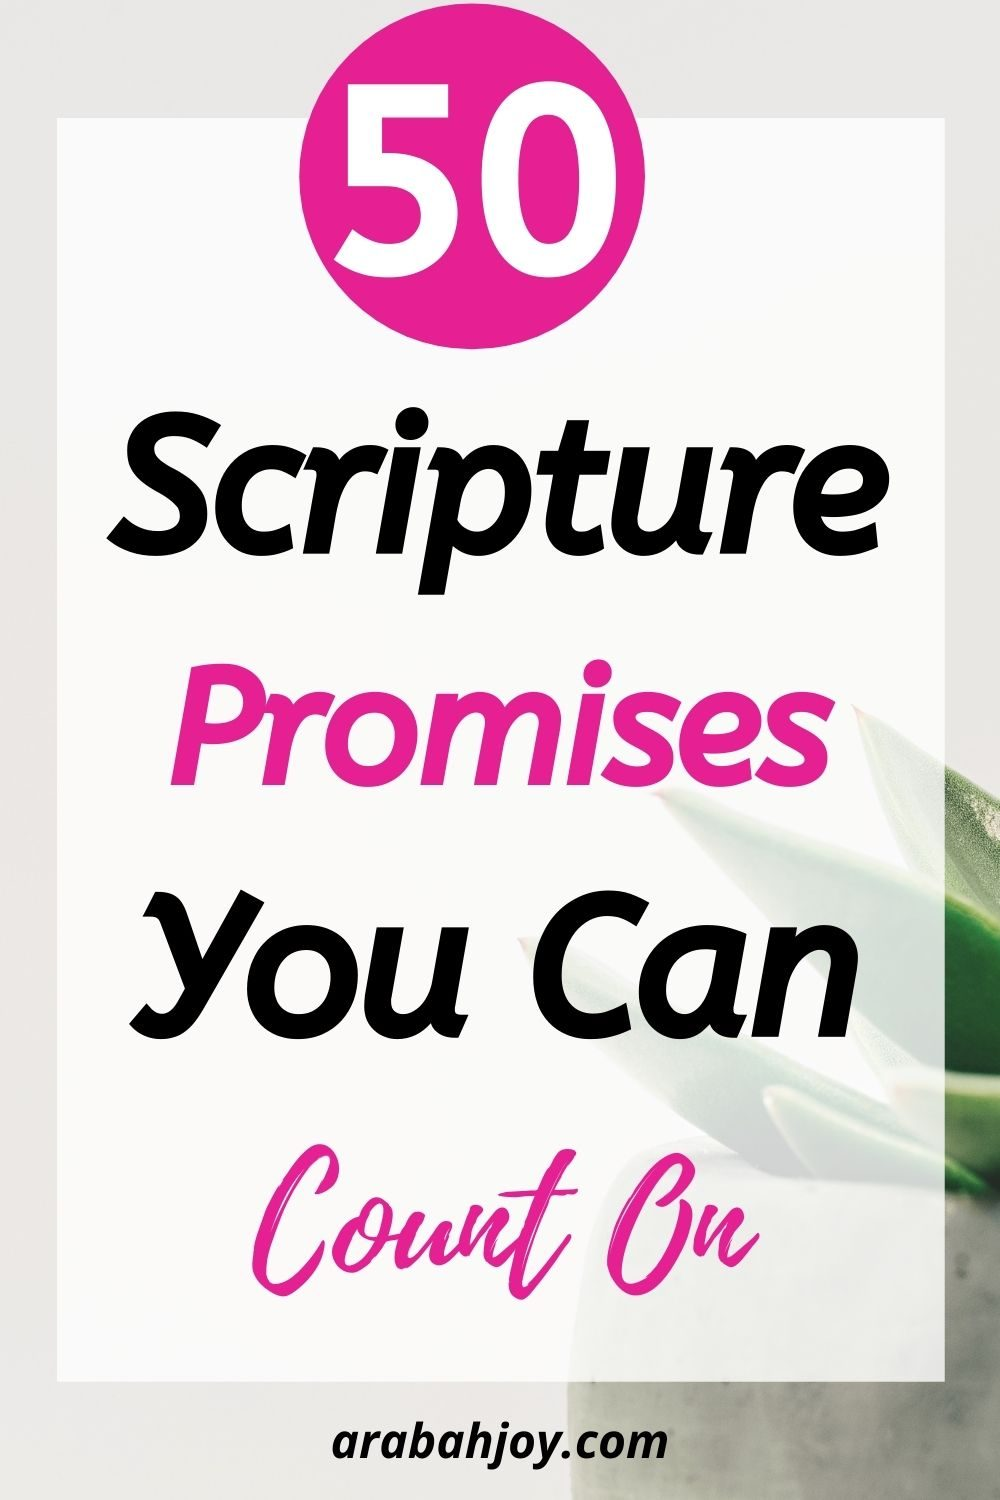 Check out these amazing Scripture promises of God for YOU!